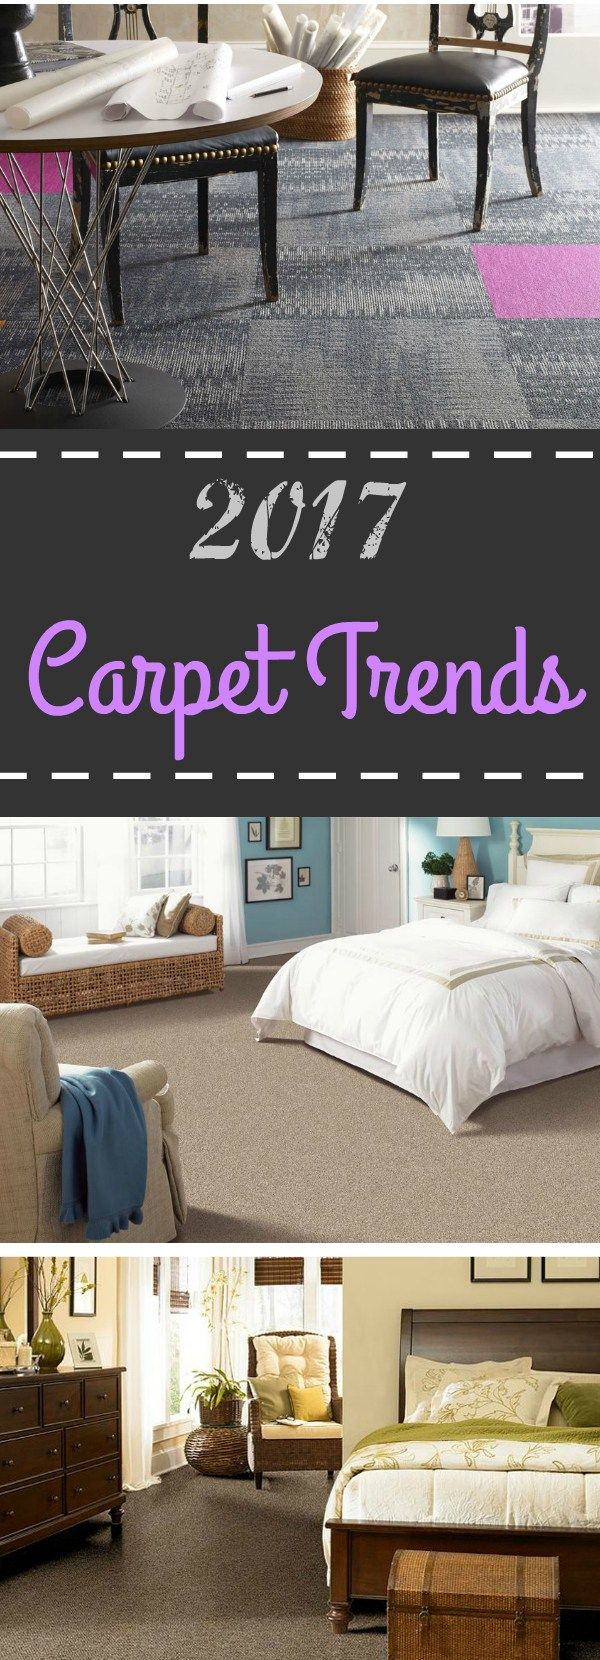 What Will Be The Biggest 2017 Bedroom Trends: 2017 Carpet Trends: 10 Ways To Stay Current